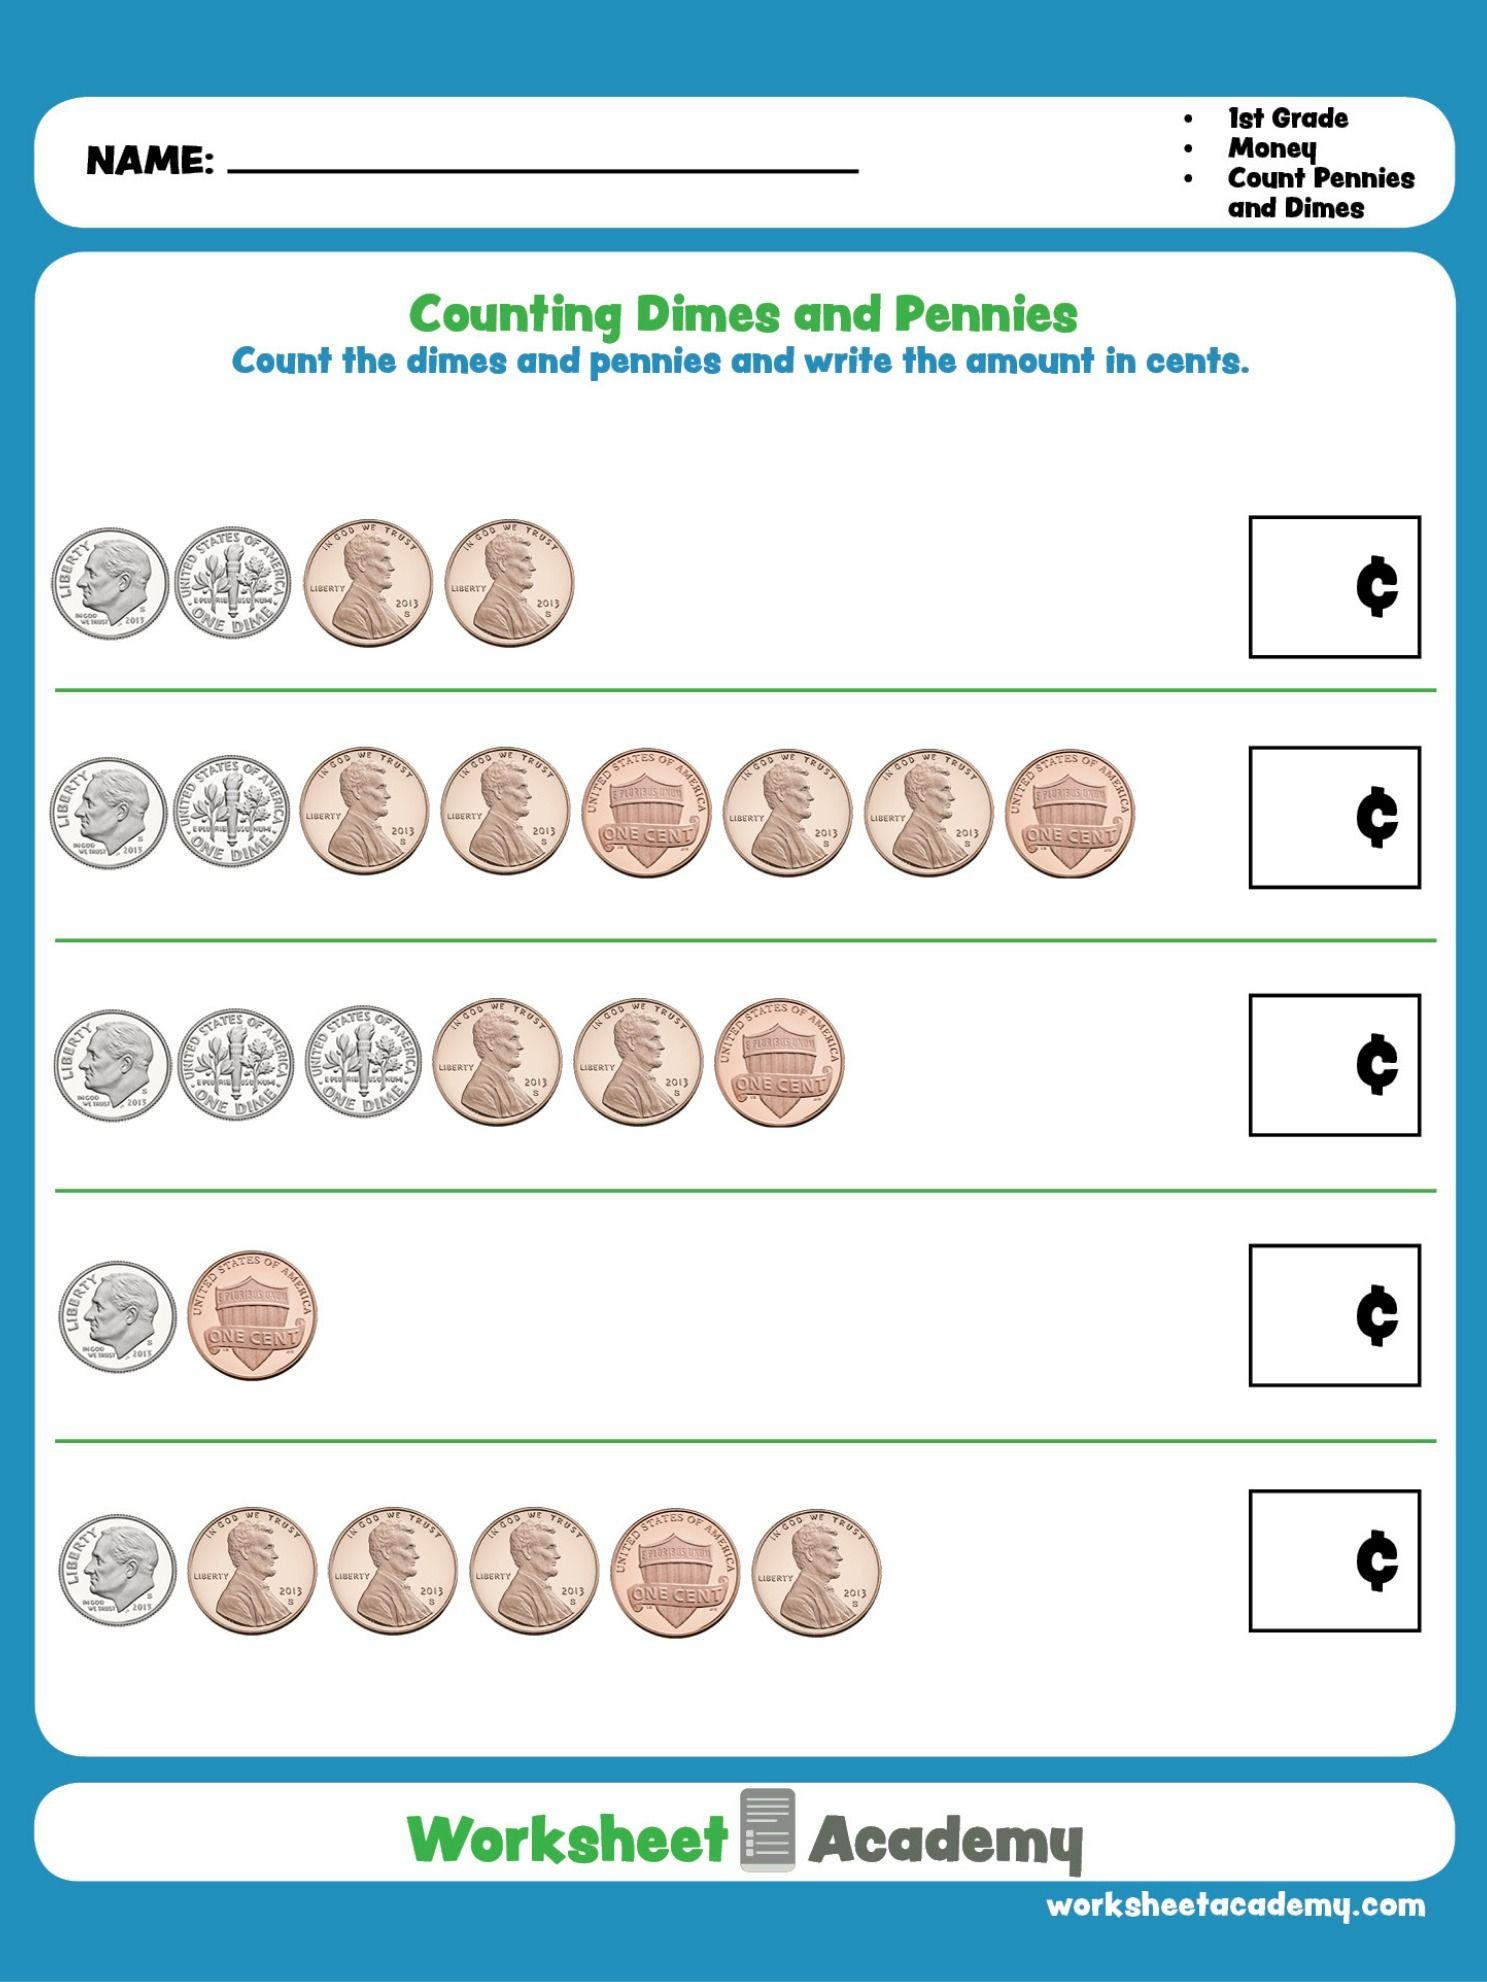 hight resolution of Counting Money Dimes Worksheets For Kindergarten   Printable Worksheets and  Activities for Teachers